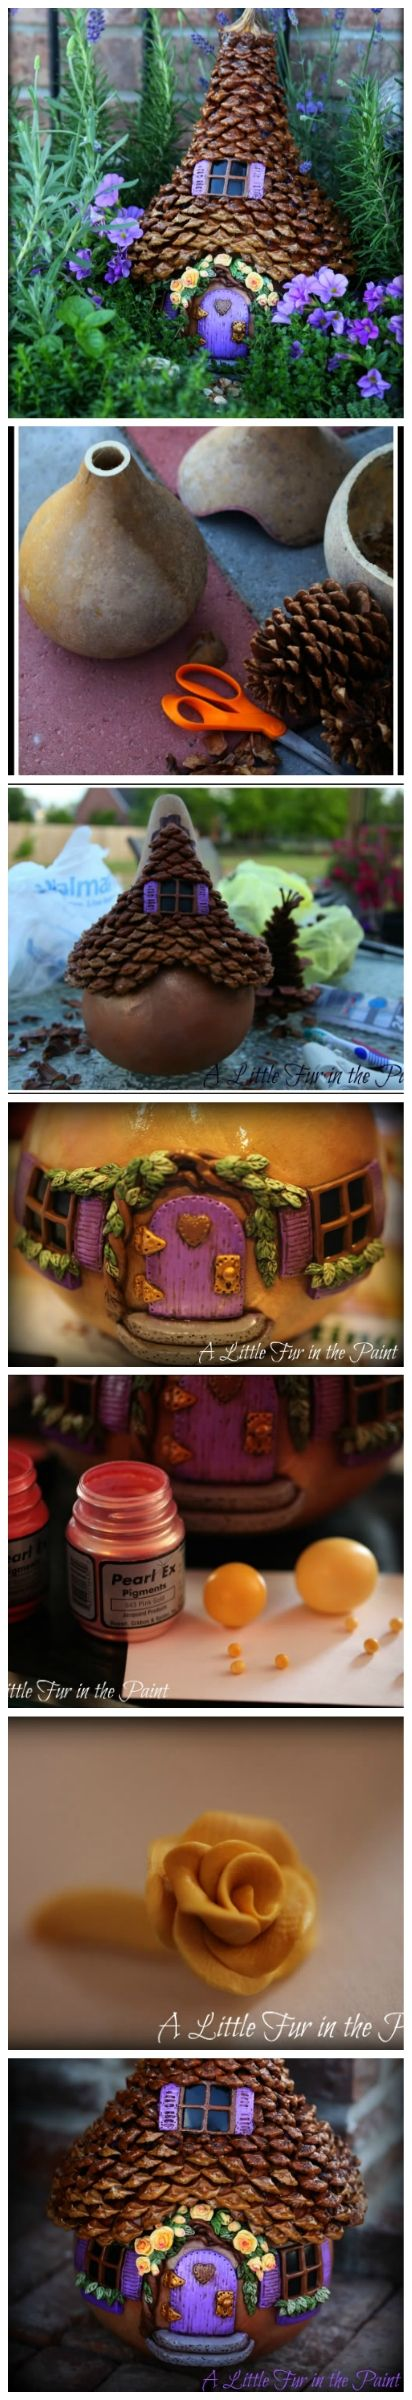 The Fairy house -  casinha de fadas